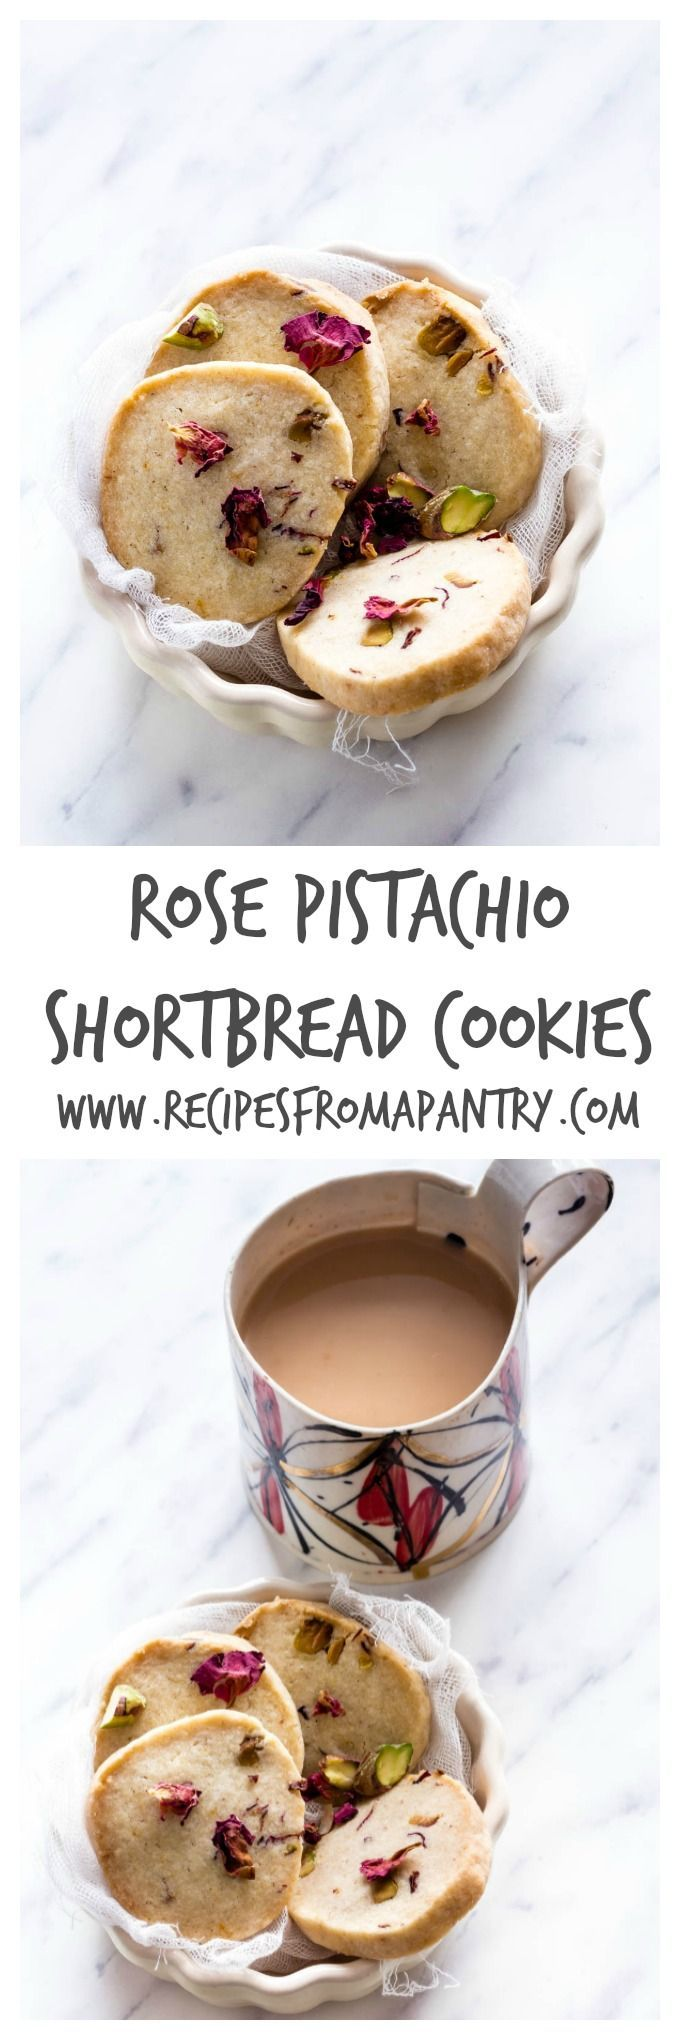 Rose Pistachio Shortbread Cookies | Recipes From A Pantry